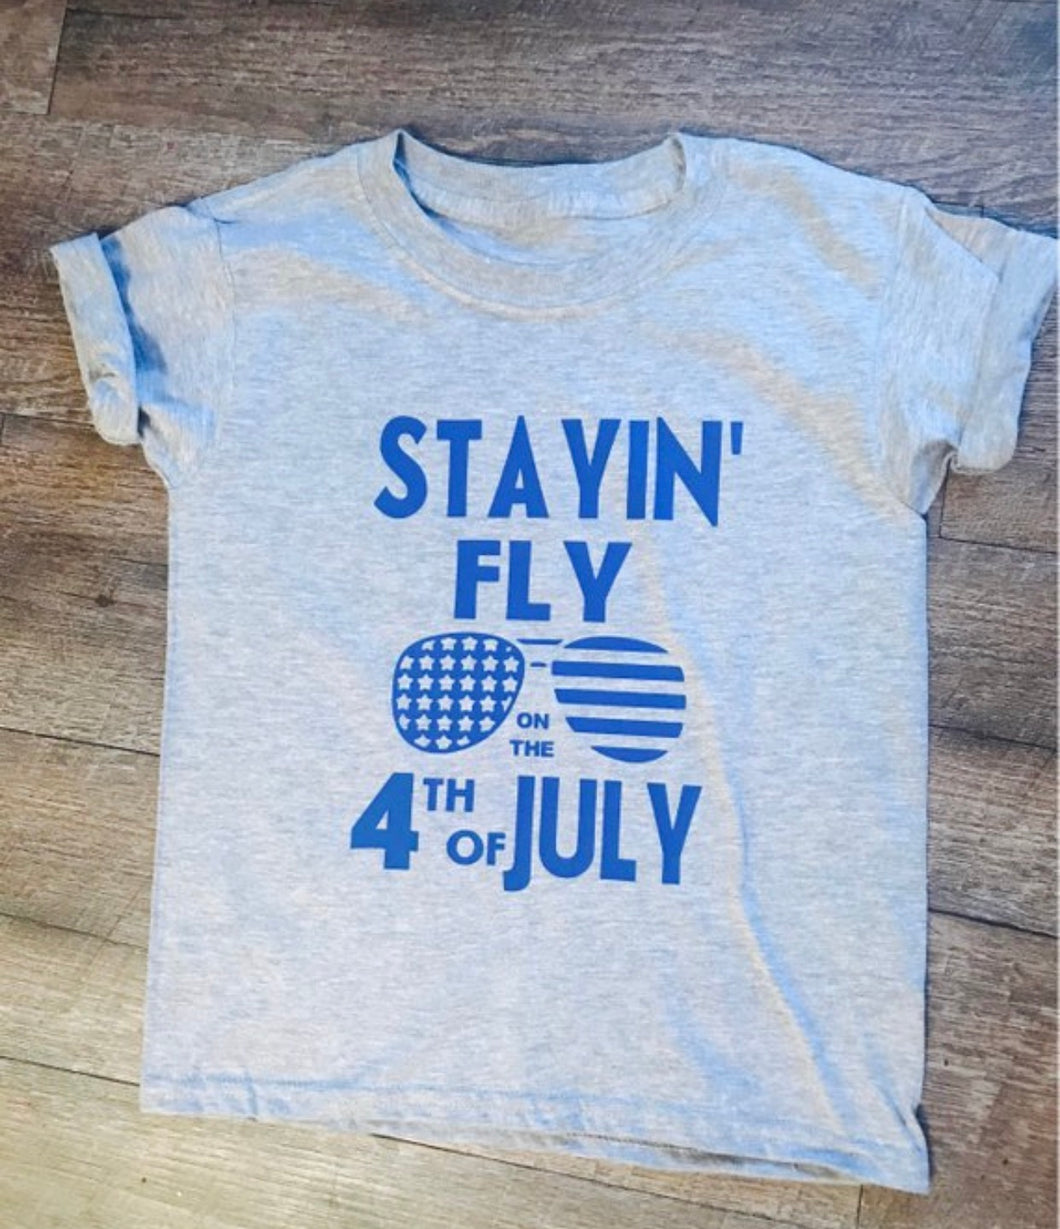 Stayin Fly on the 4th of July custom graphic tee. Graphic tshirt. Parriotic. Independence Day. Holiday. - Mavictoria Designs Hot Press Express